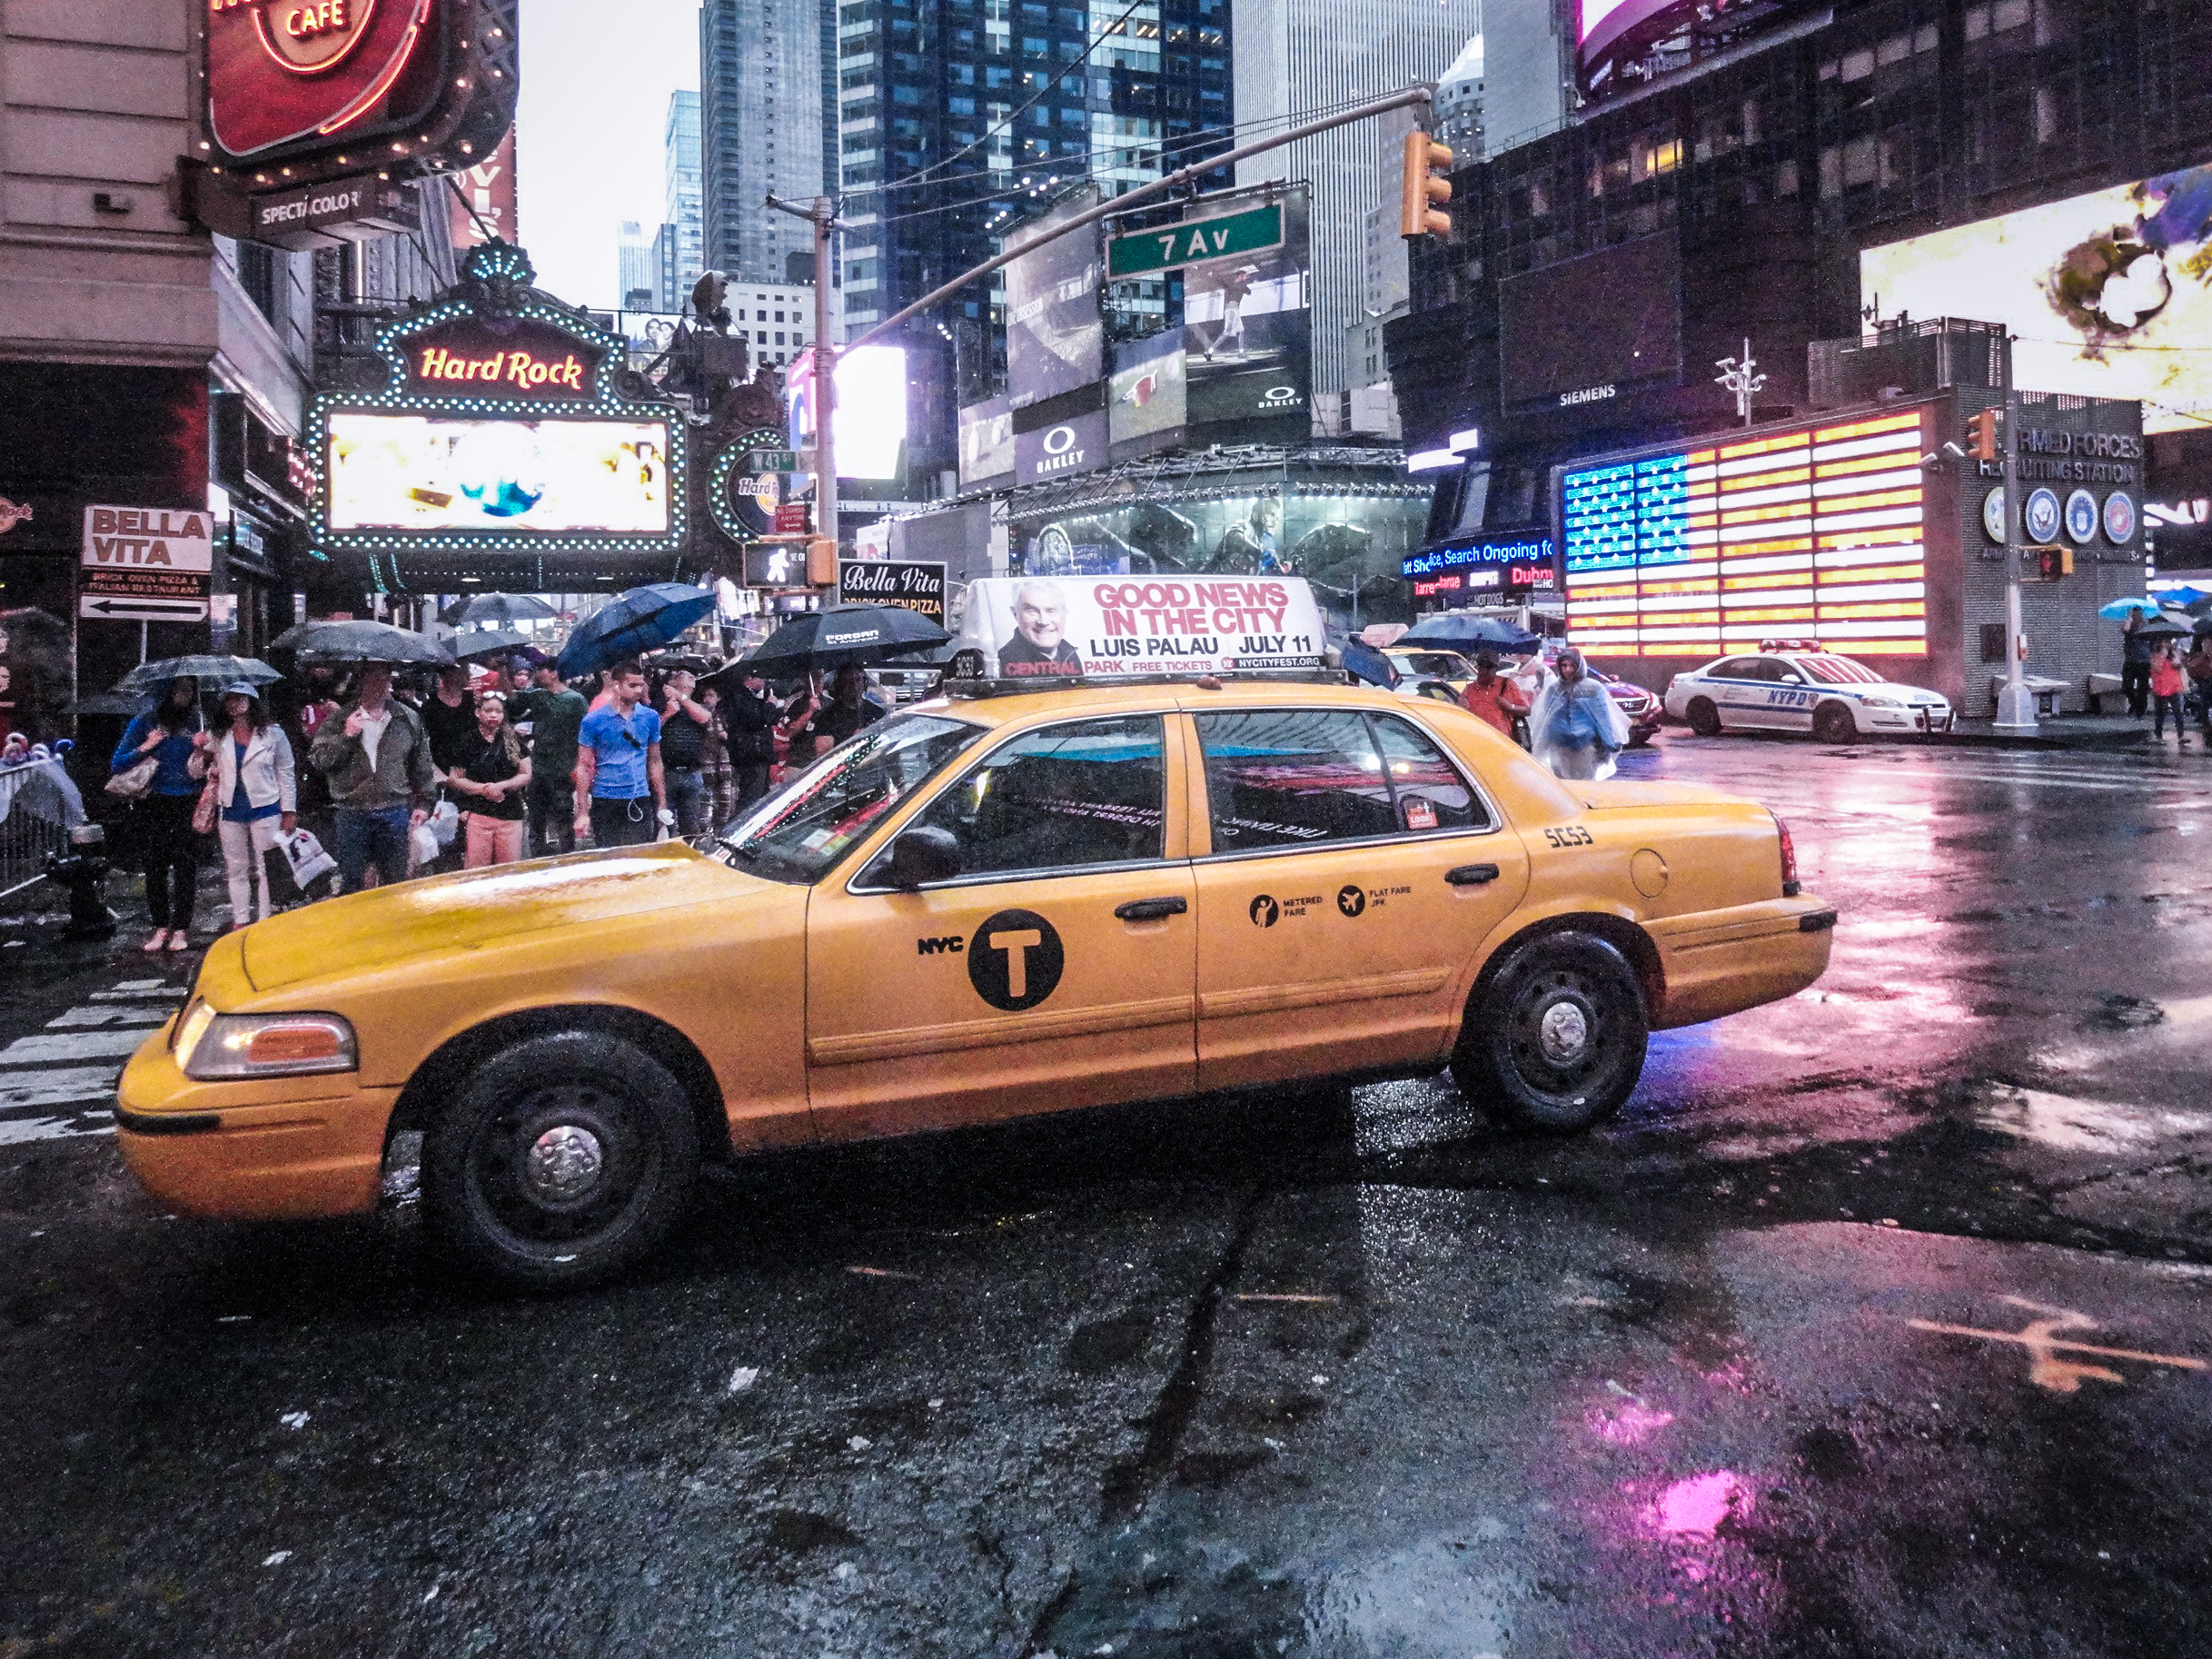 New York taxi, time square New York City, Manhattan